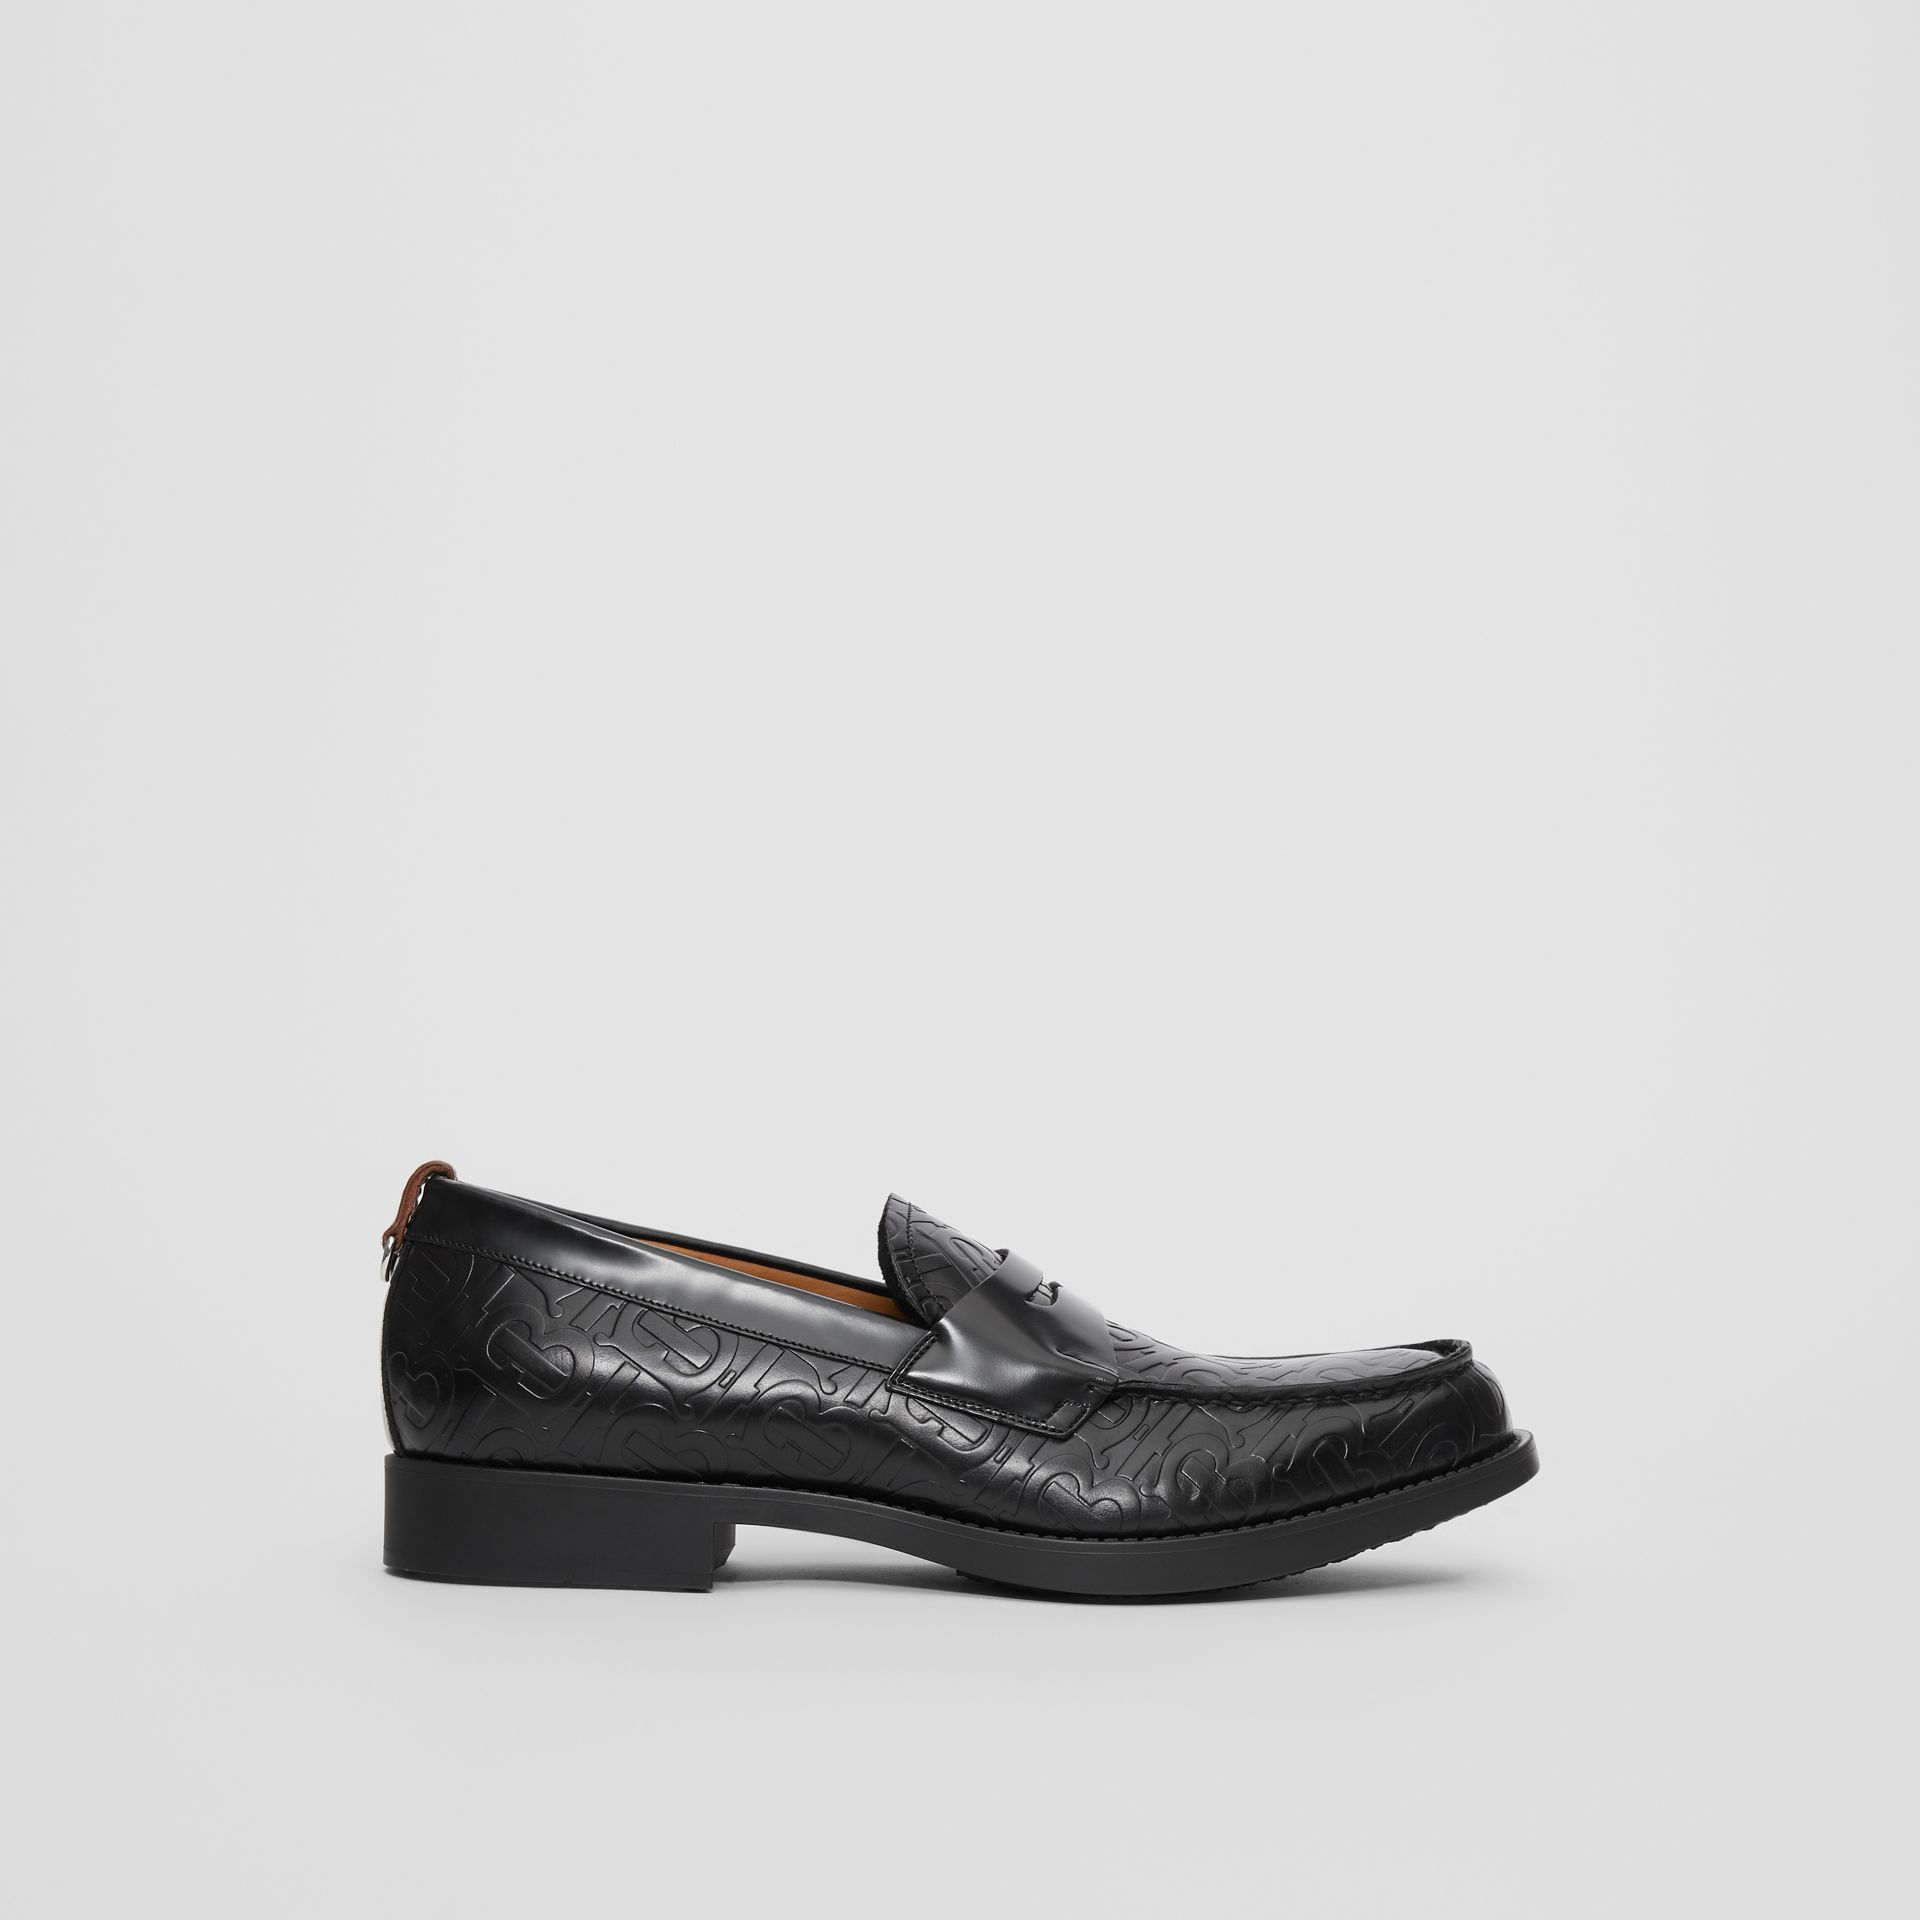 D-ring Detail Monogram Leather Loafers in Black - Men | Burberry - gallery image 4